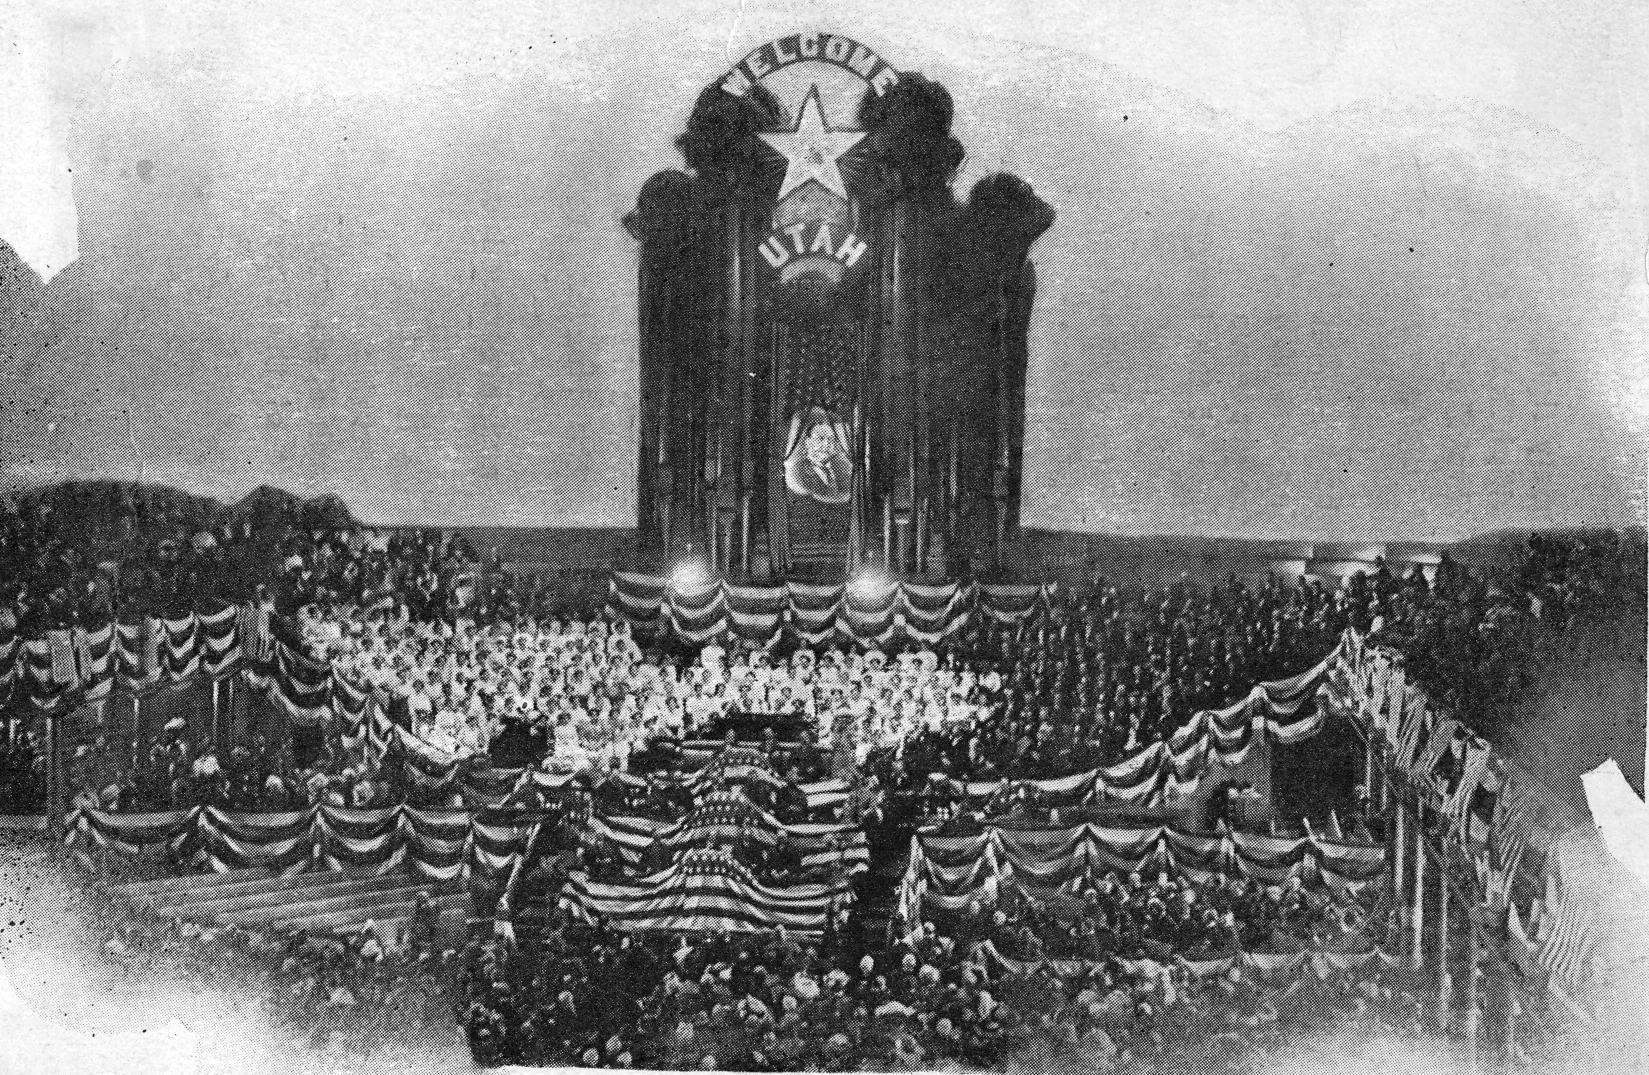 President Taft was welcomed by an overflow crowd of old folks from Utah in the Salt Lake Tabernacle on October 1911.